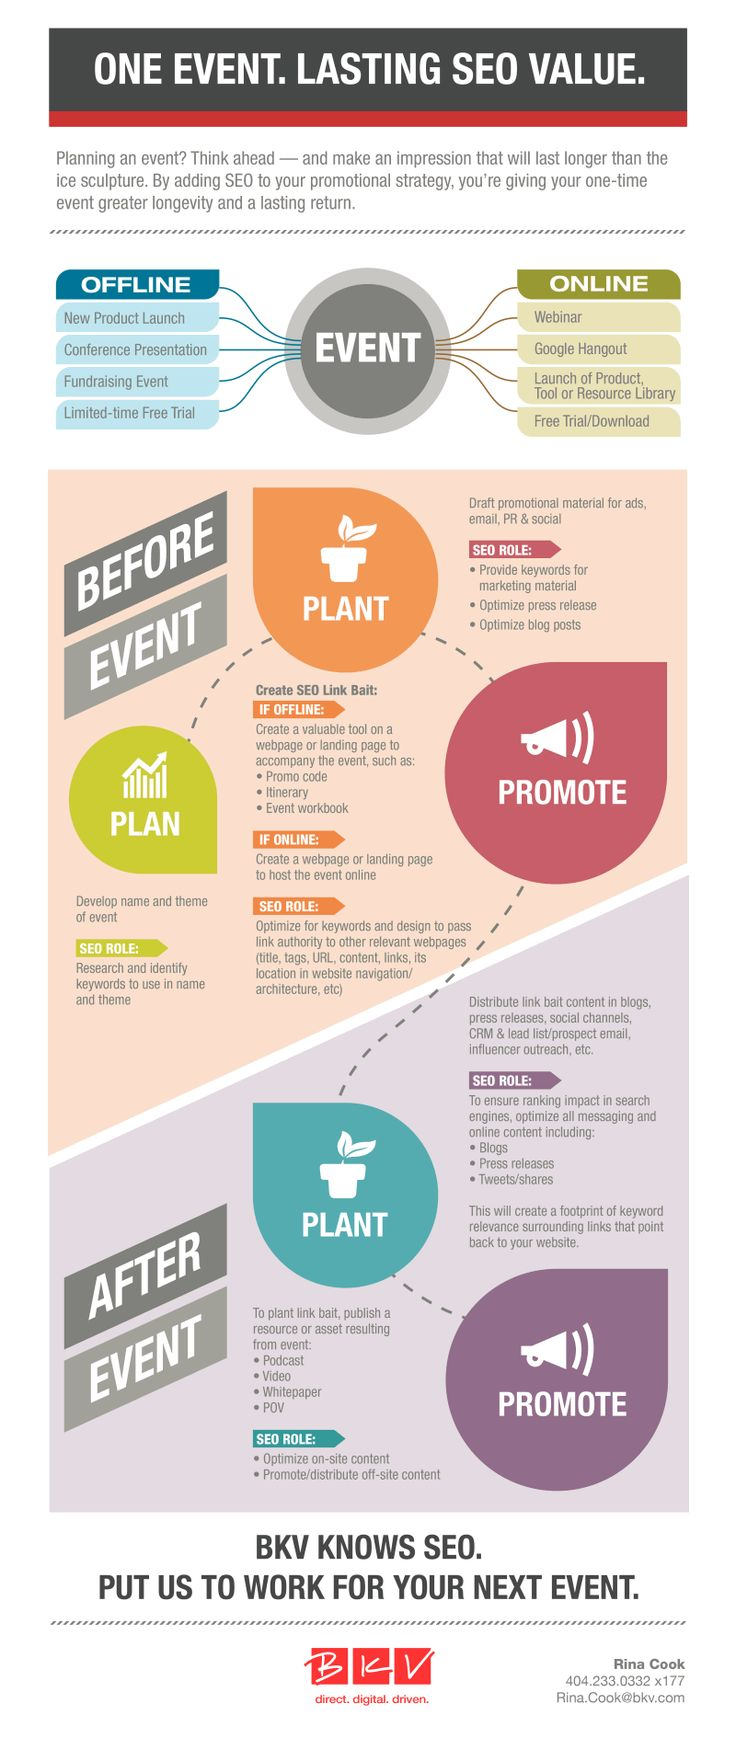 SEO Gives Your Event Marketing